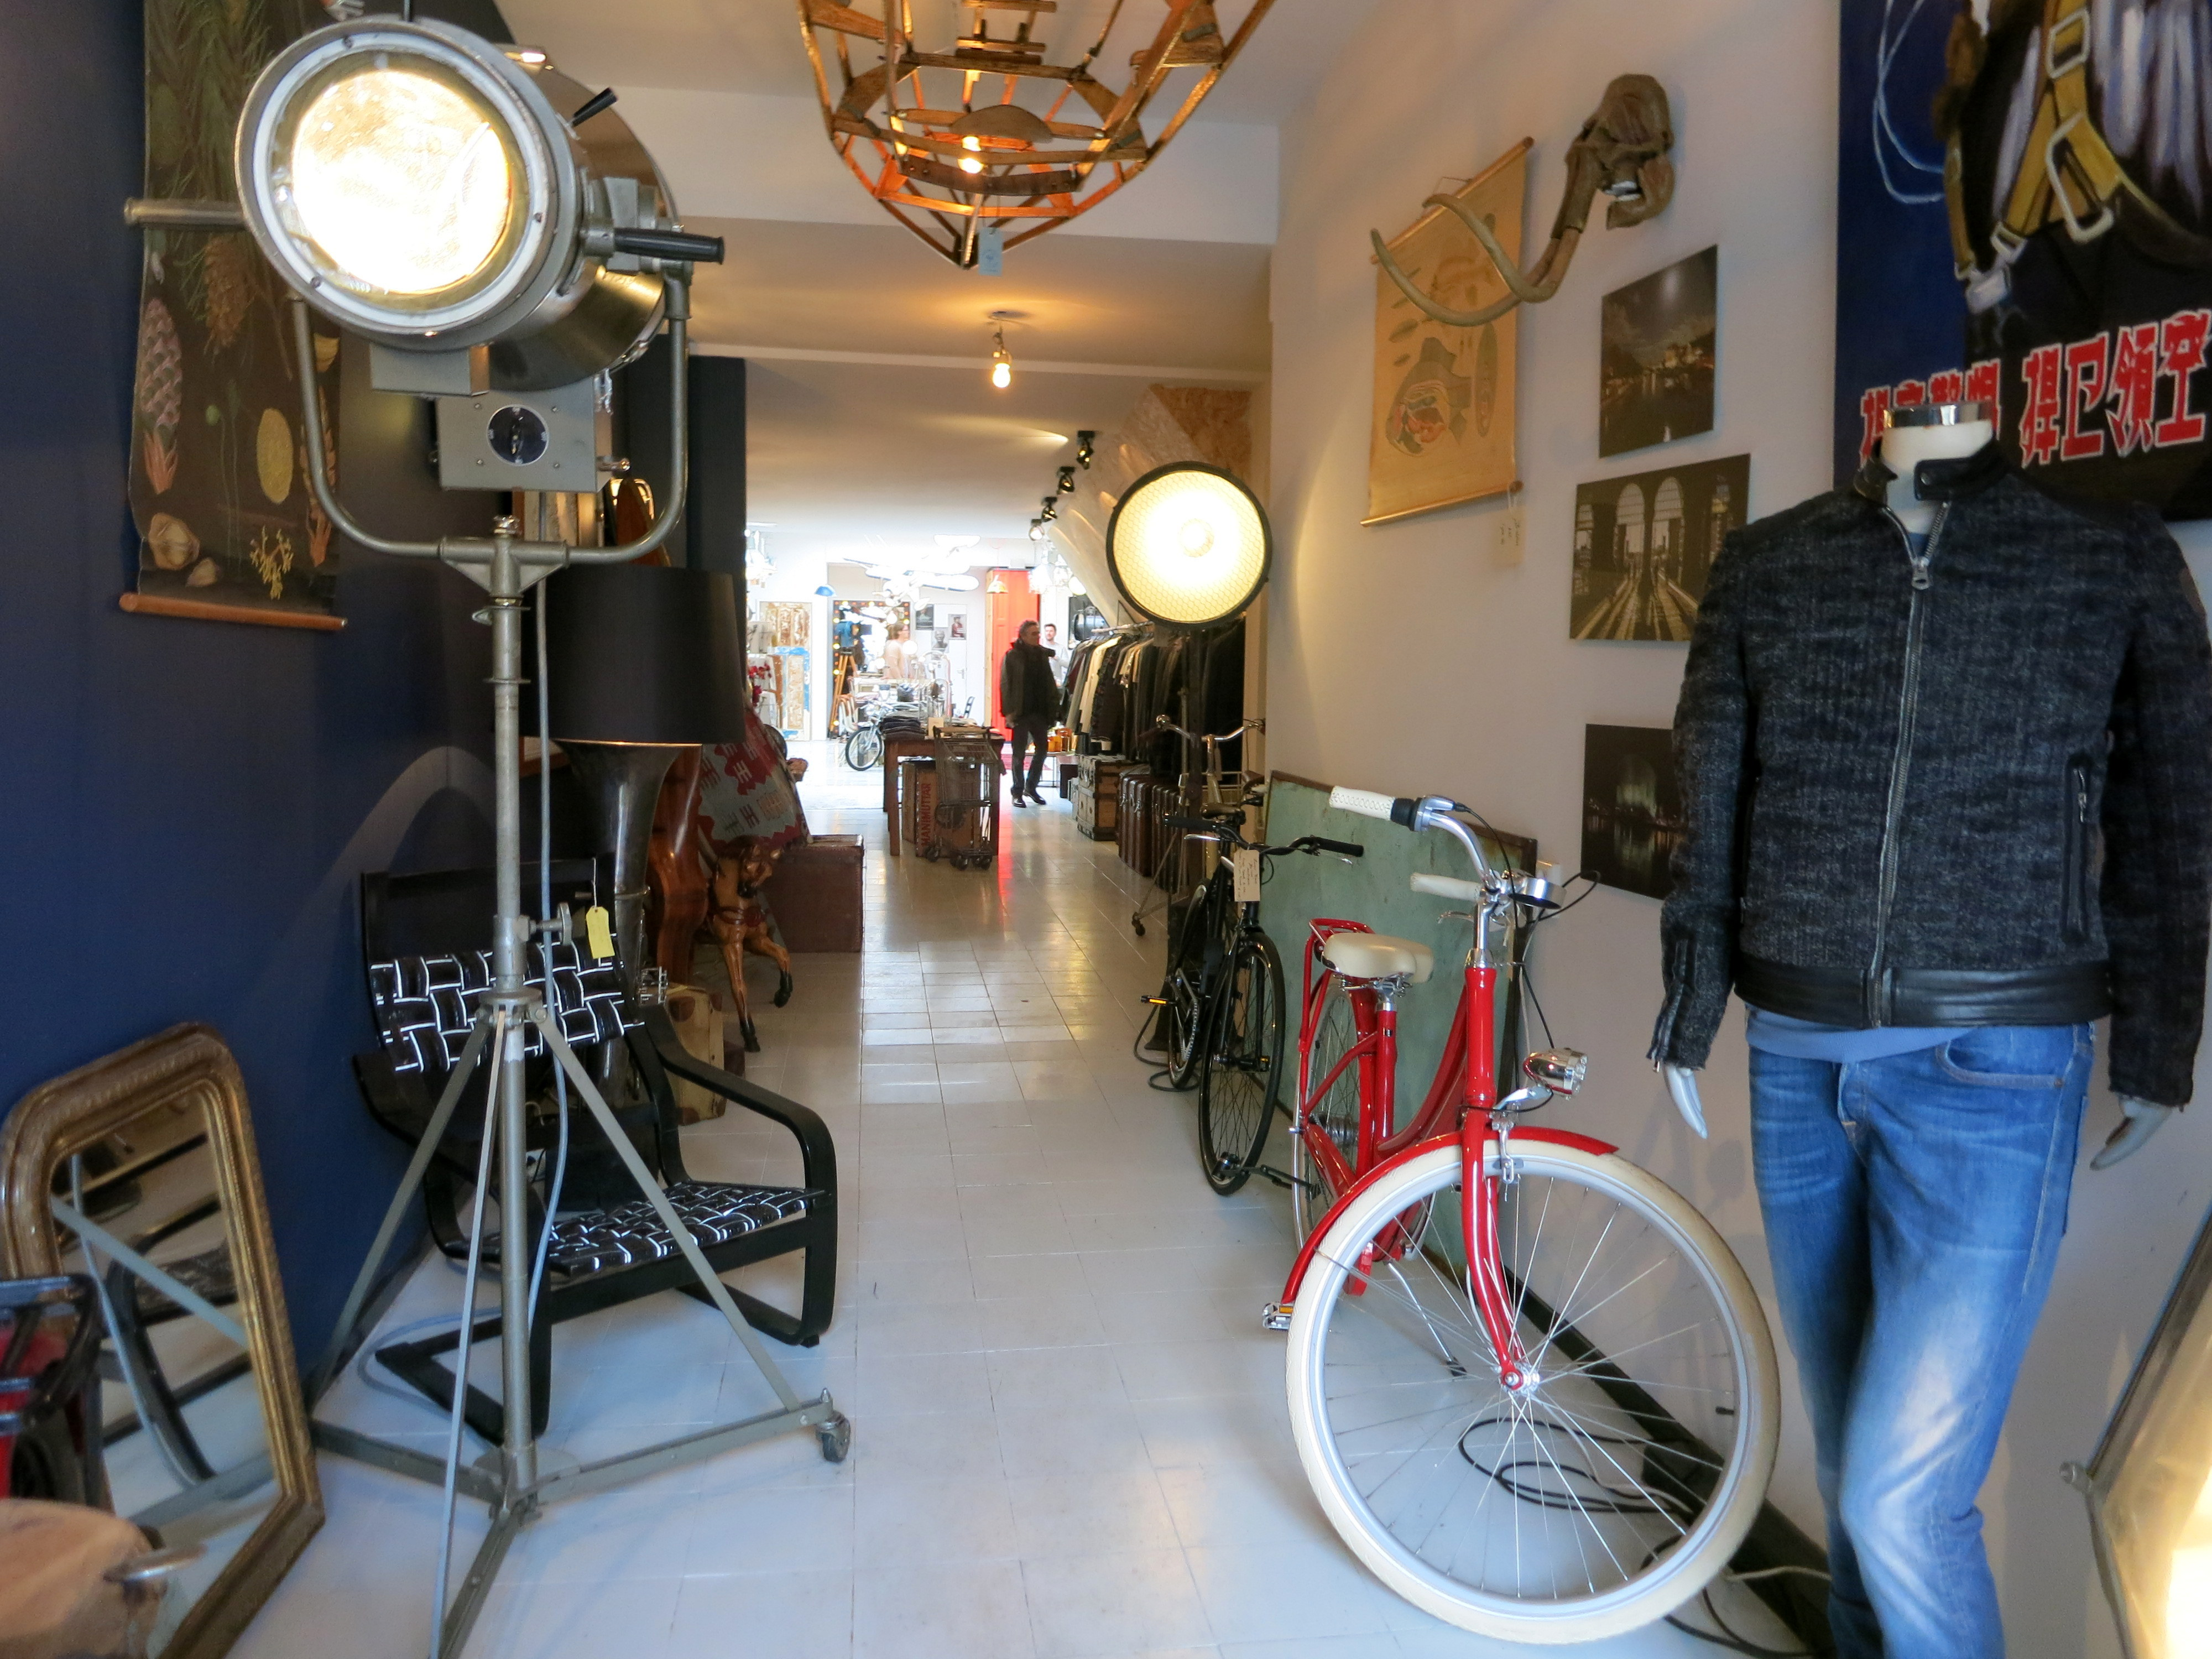 A new shop and gallery is open on Elandsgracht. Come by and check out the cool clothing and funky artifacts for your home at E Street 37. awesomeamsterdam.com